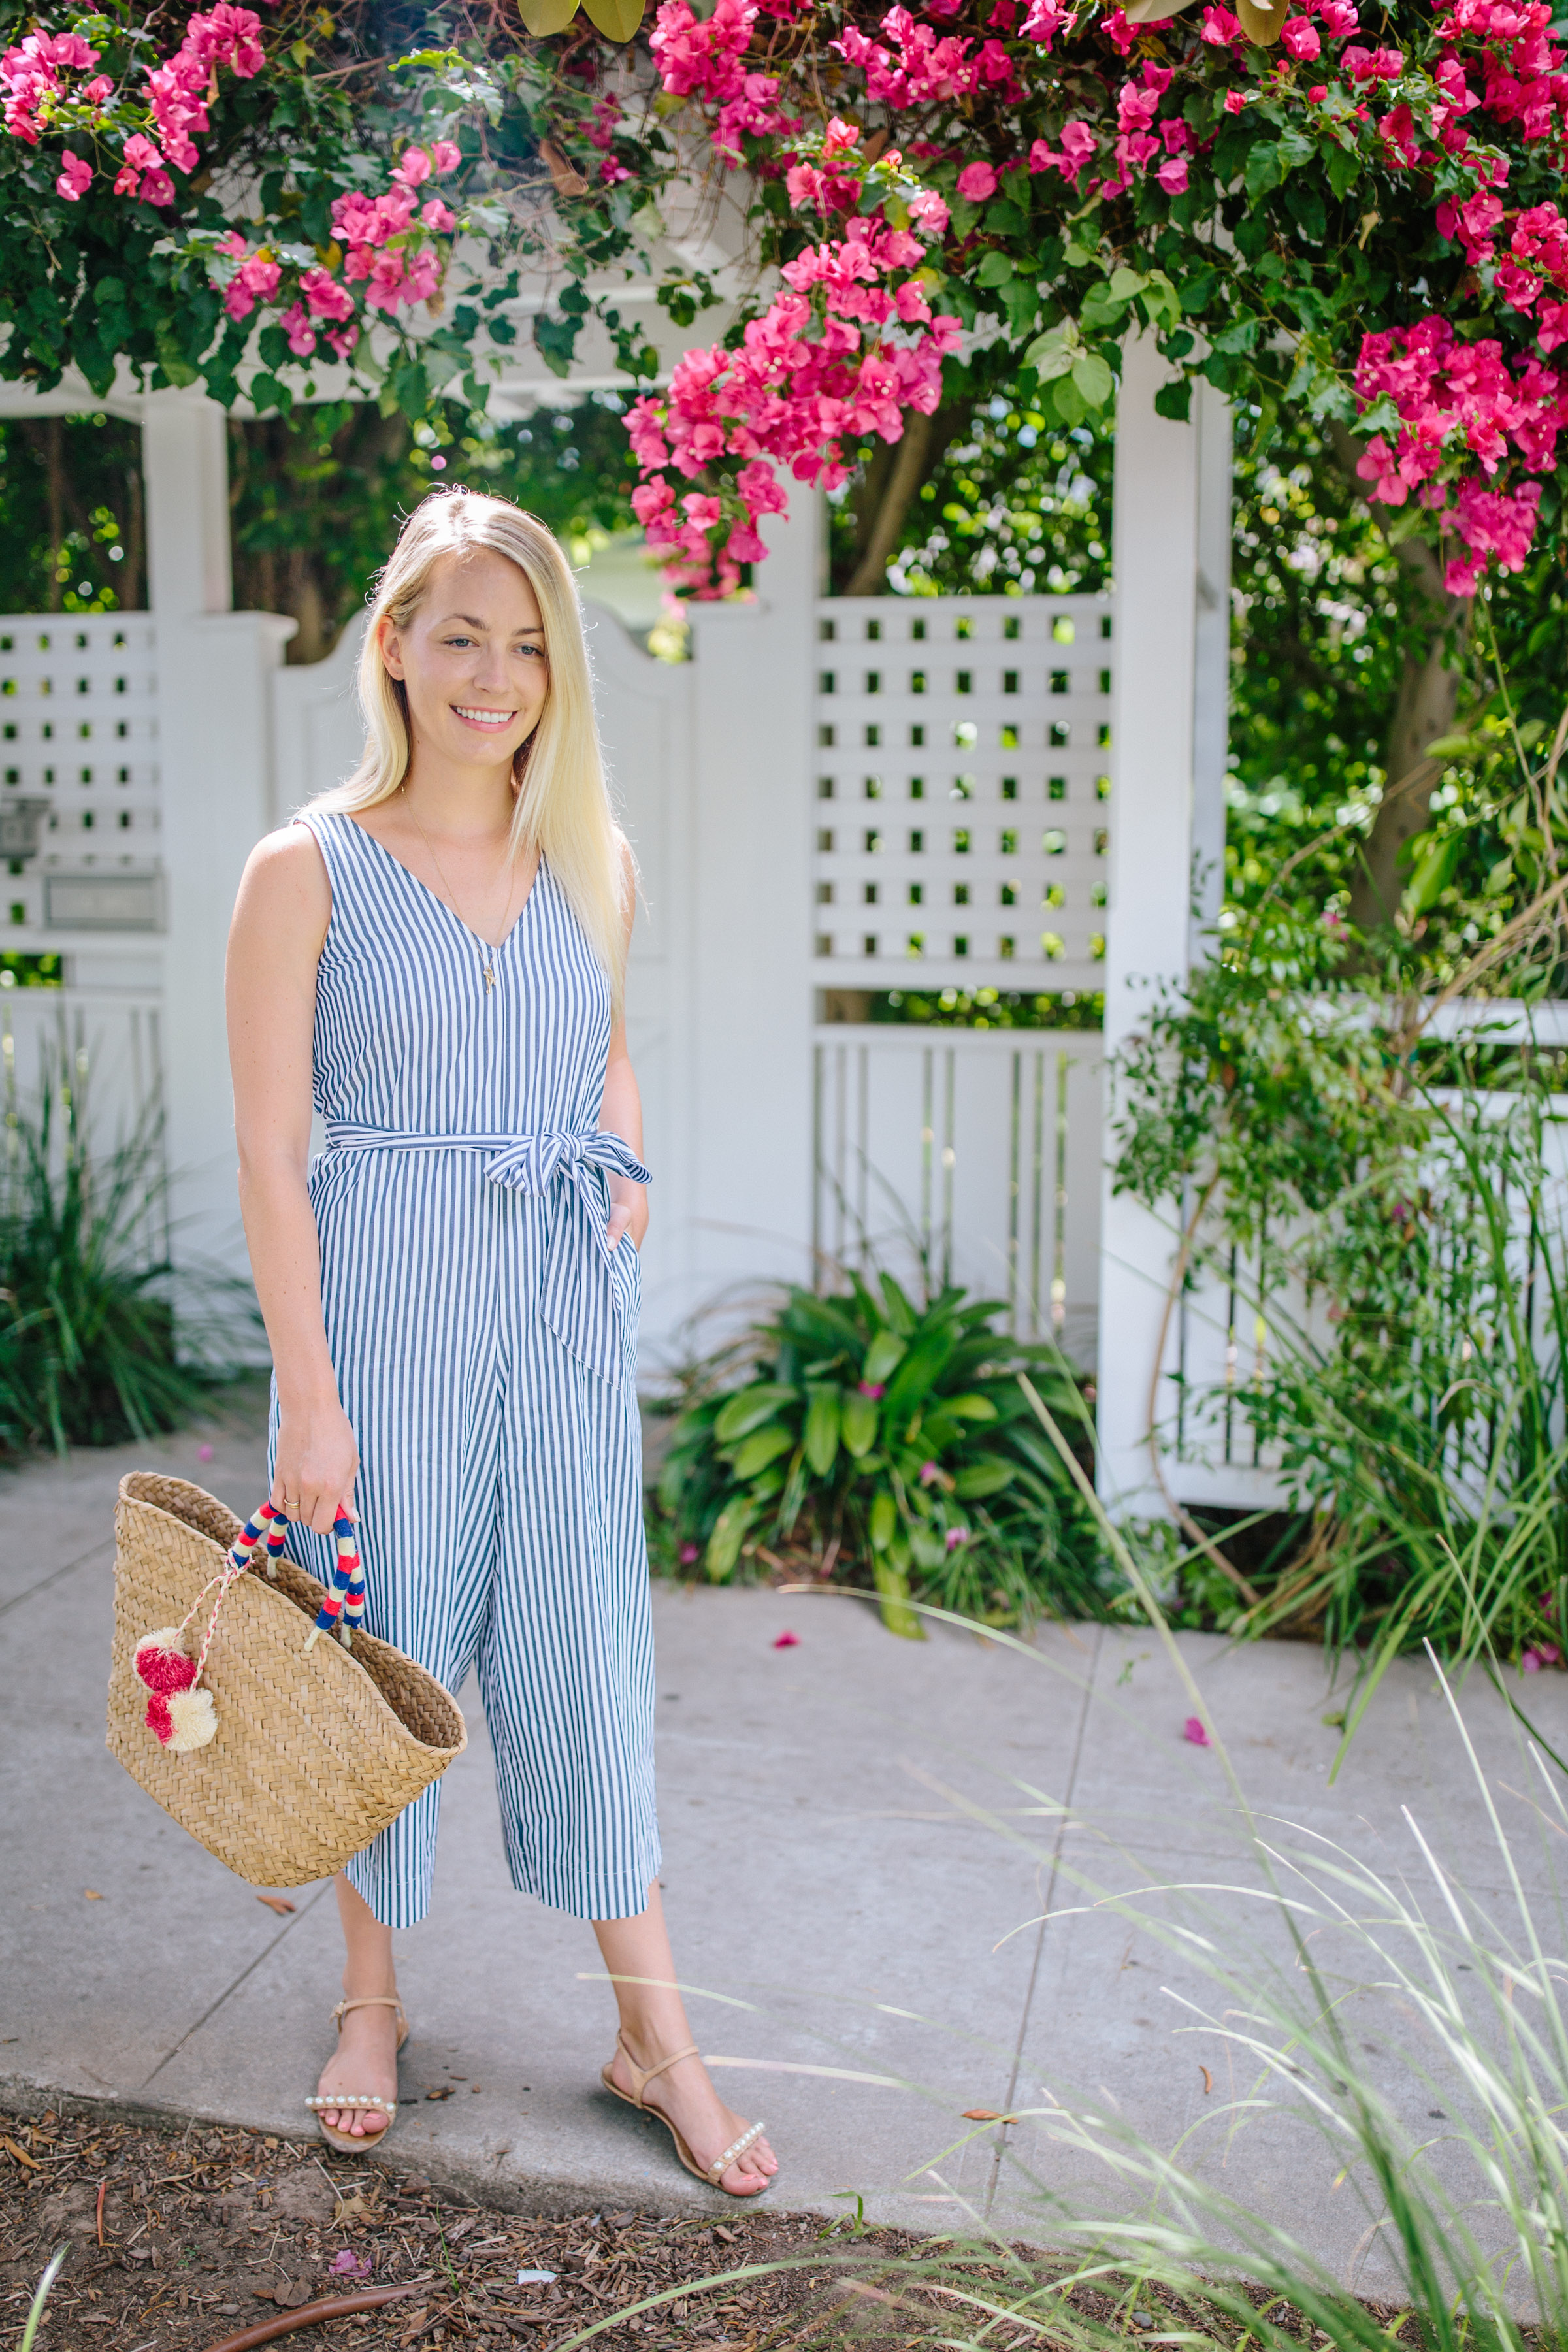 Summer's must-have jumpsuits + how to style a jumpsuit for everyday wear // Rhyme & Reason